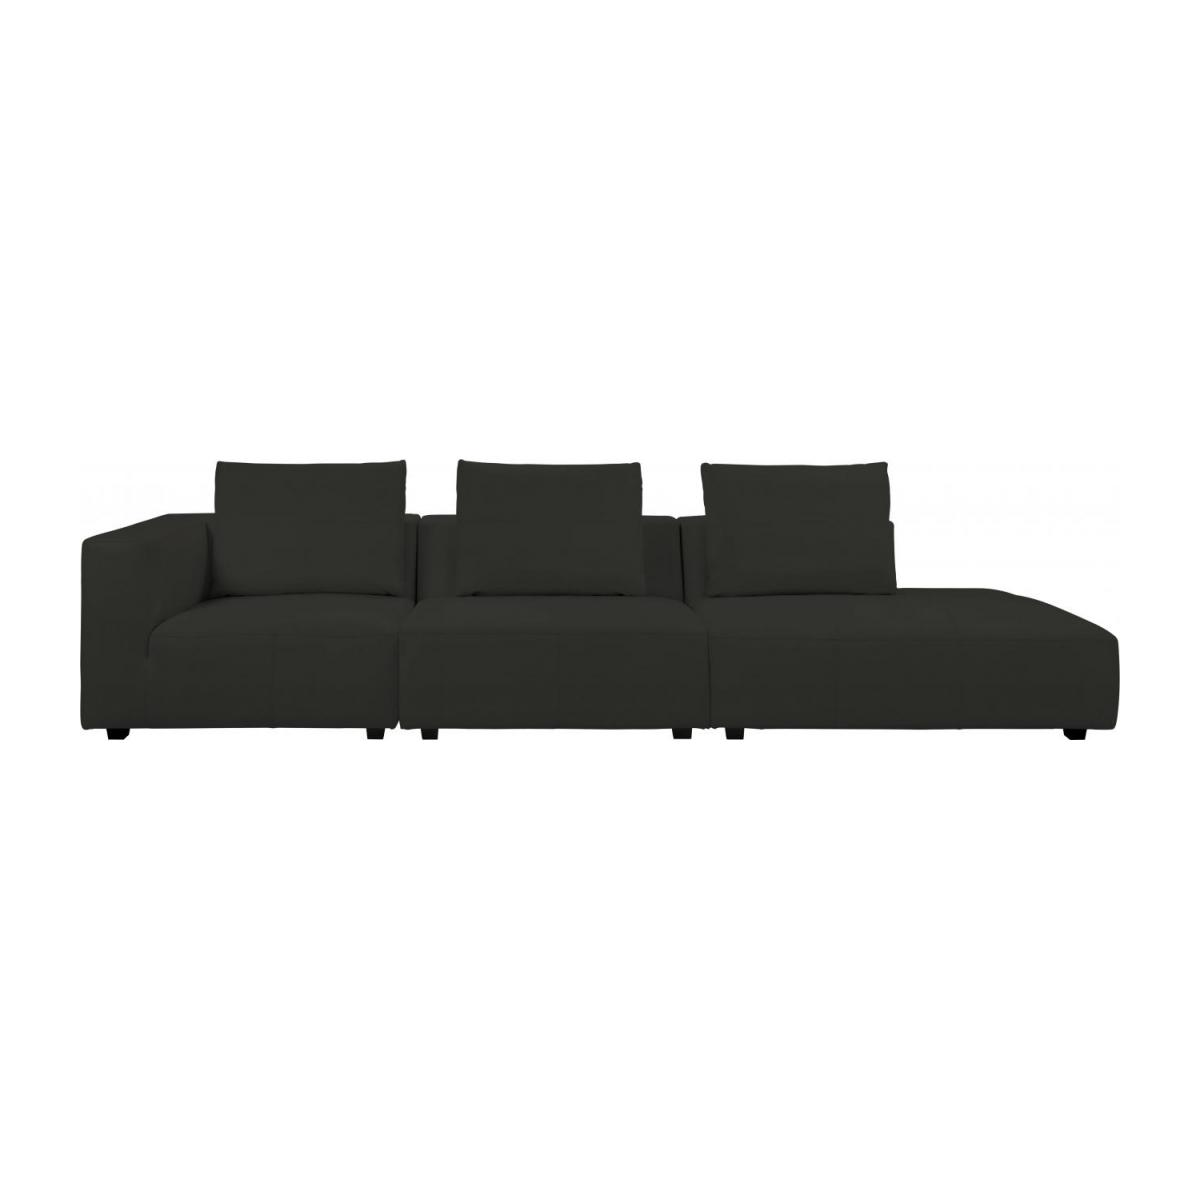 1,5 seater sofa with right armrest in Eton veined leather, brown n°10